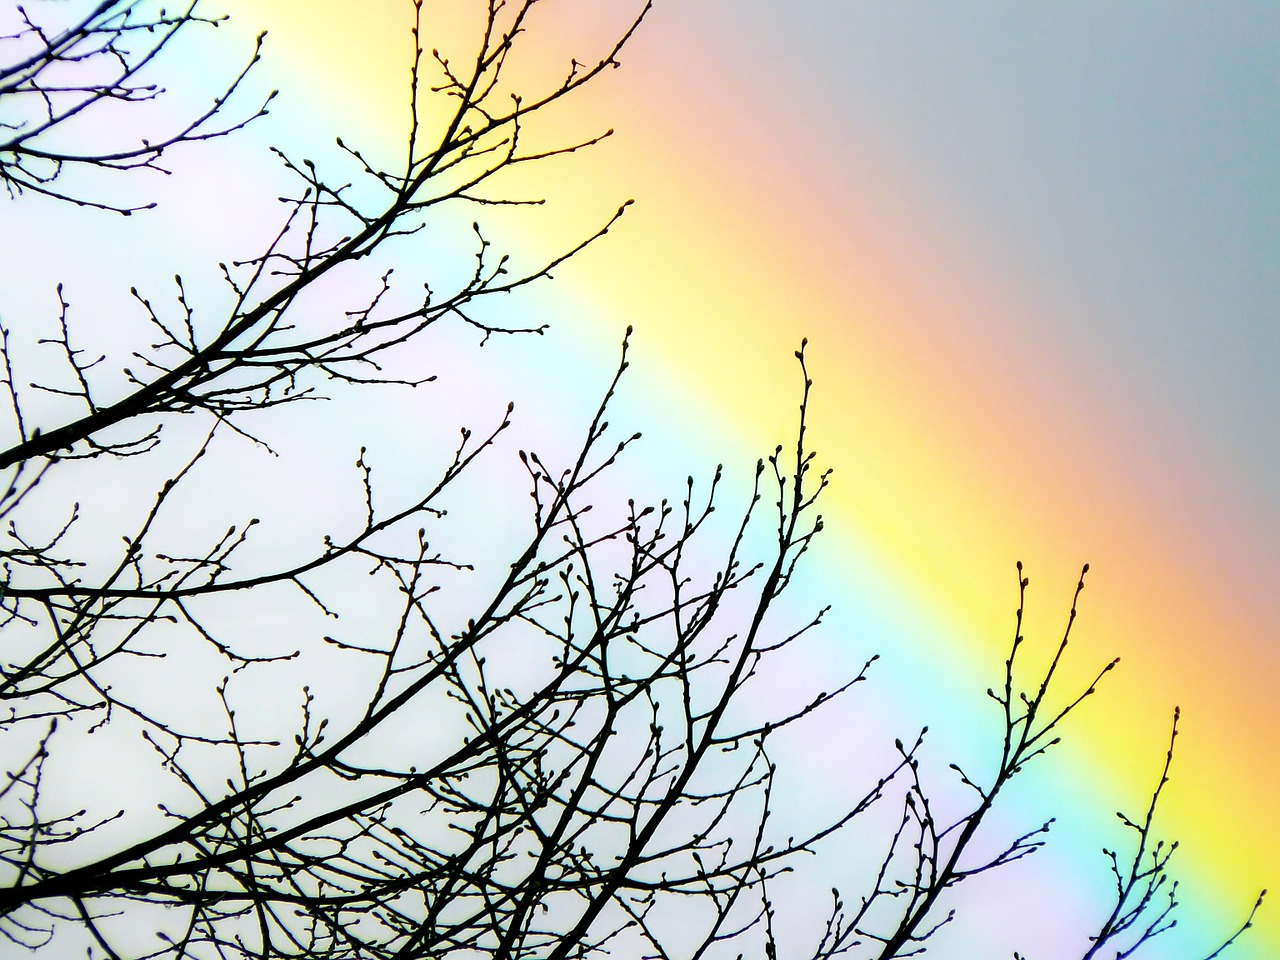 A full spectrum rainbow behind the branches of a tree